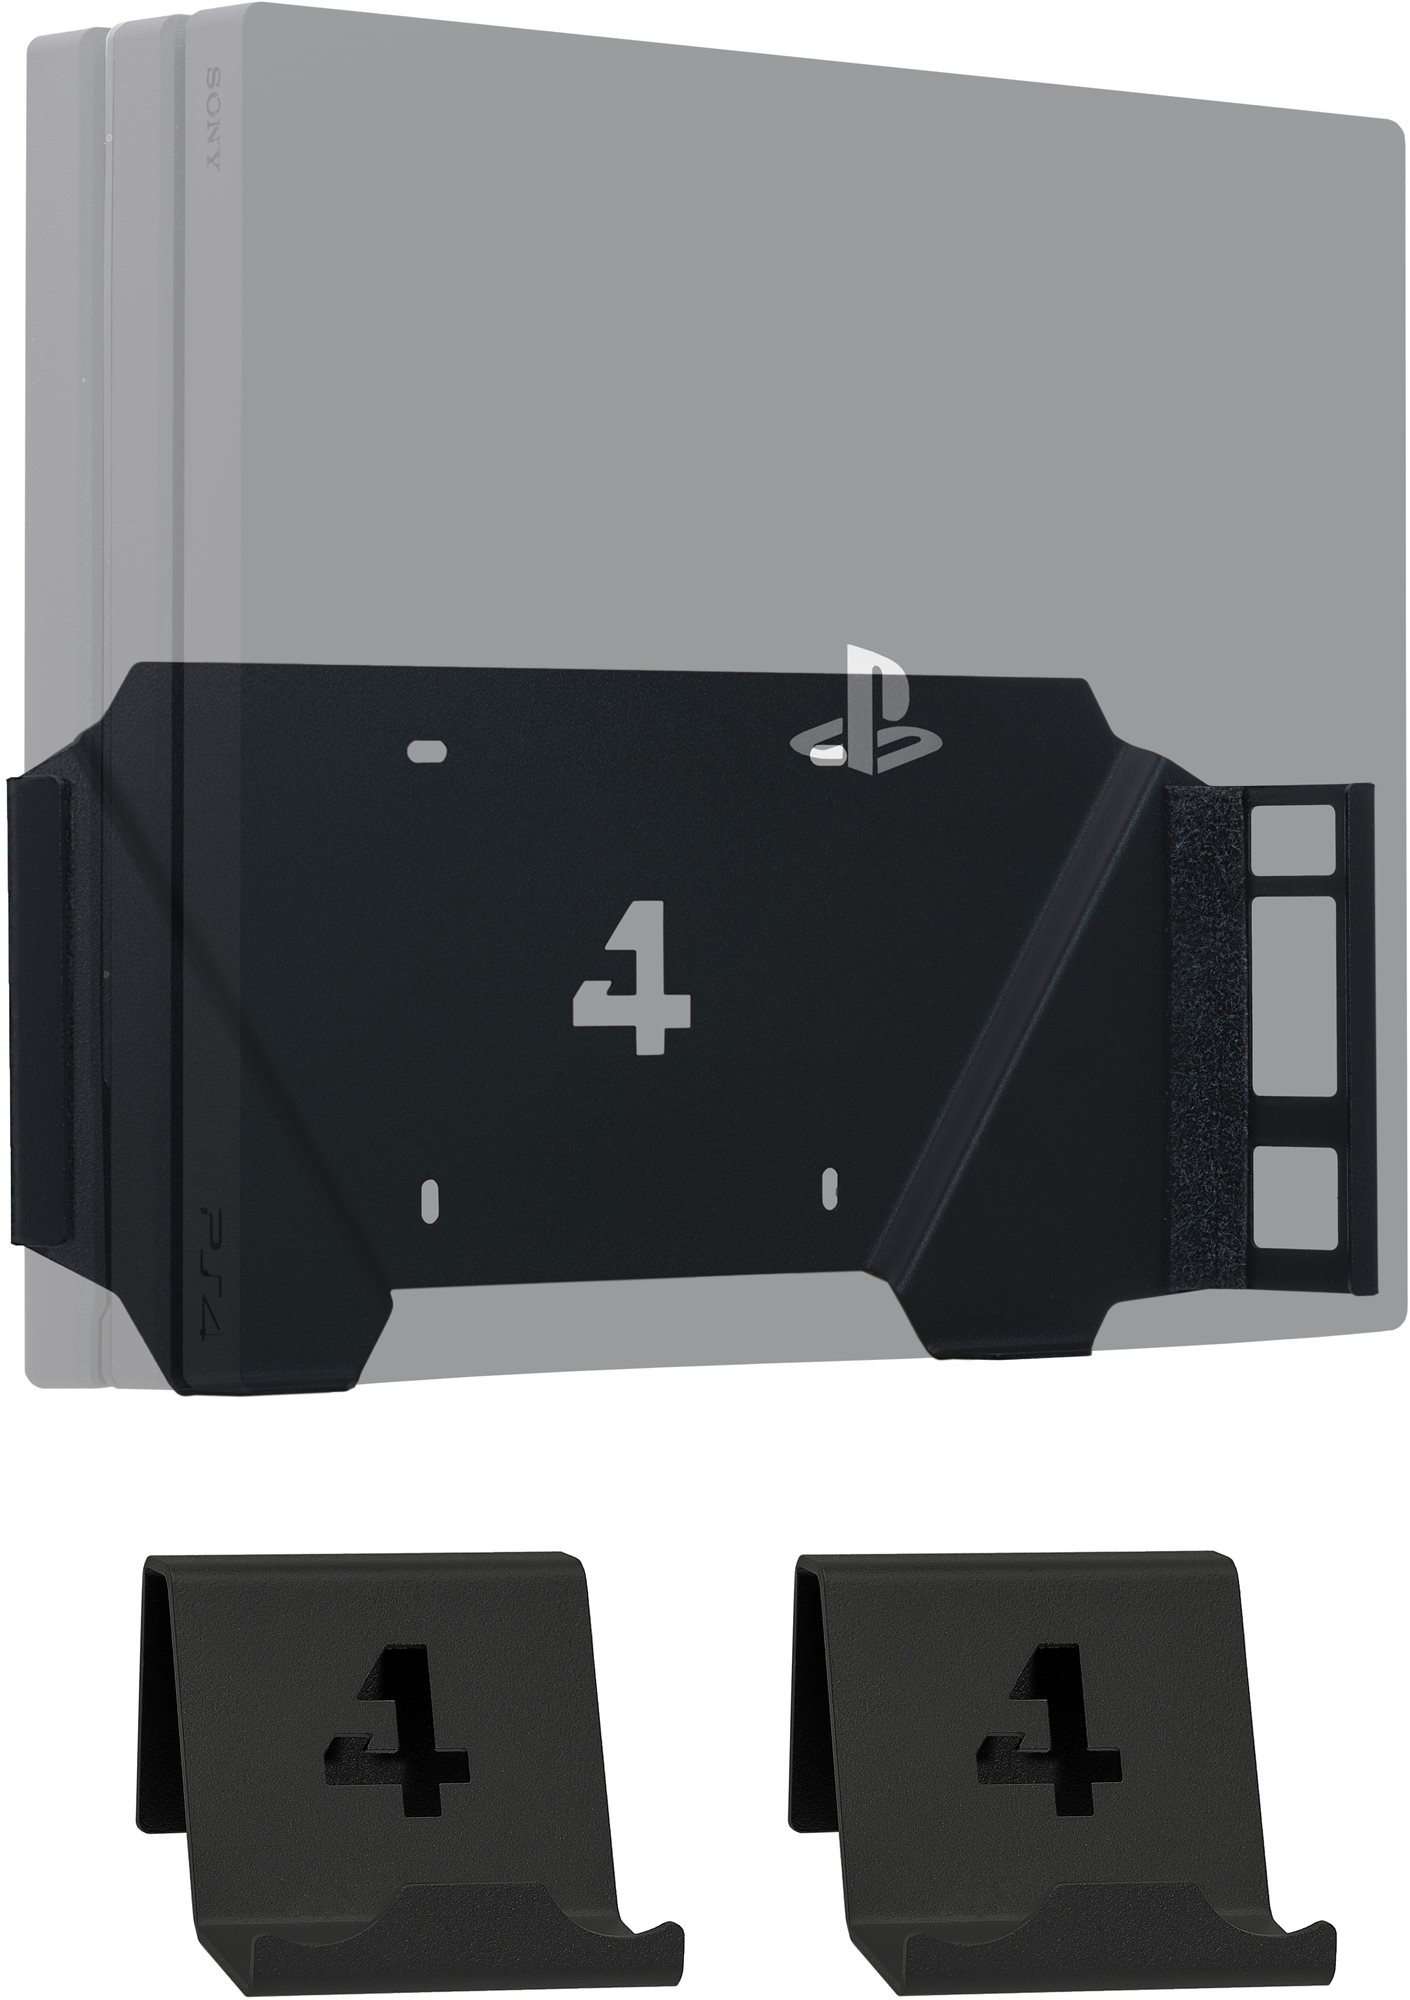 4mount - Wall Mount for PlayStation 4 Pro Black + 2x Controller Mount